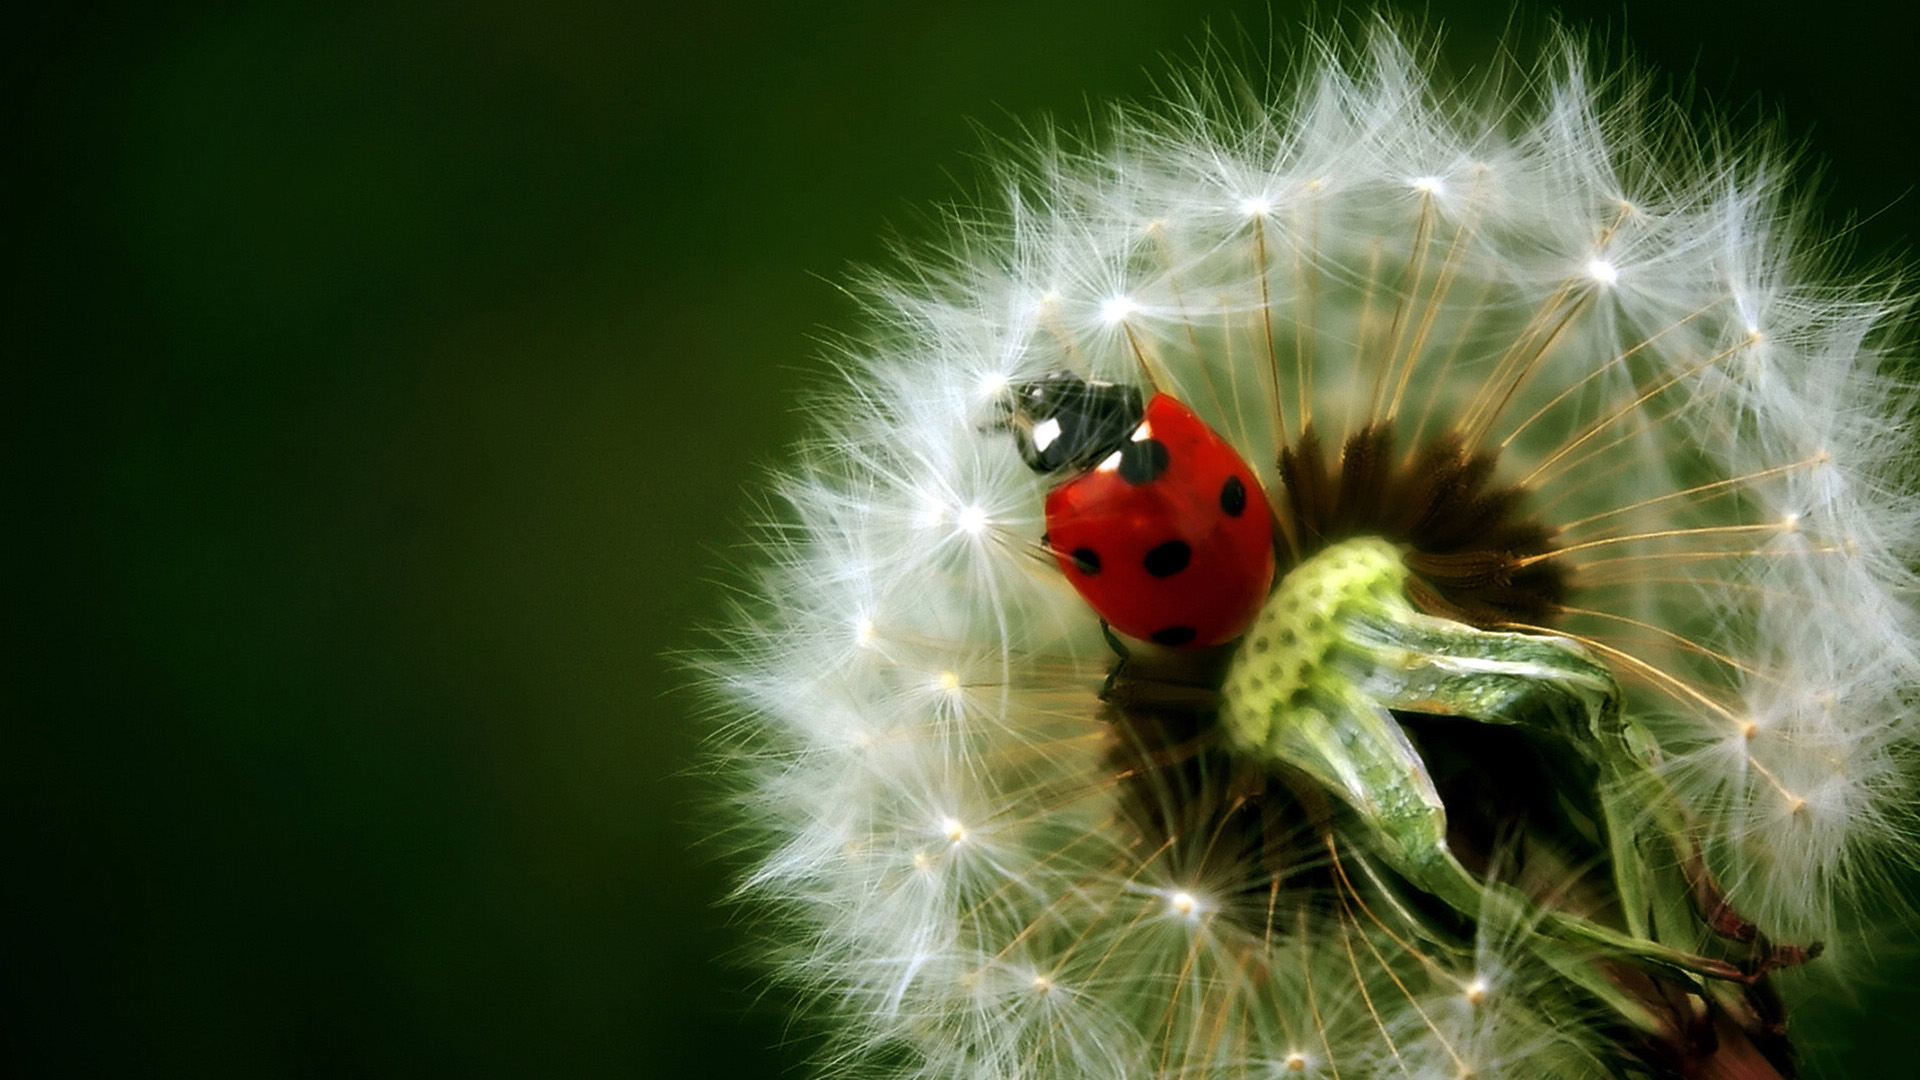 Dandelion-and-ladybug-1920x1080-1920%C3%971080-wallpaper-wp360192